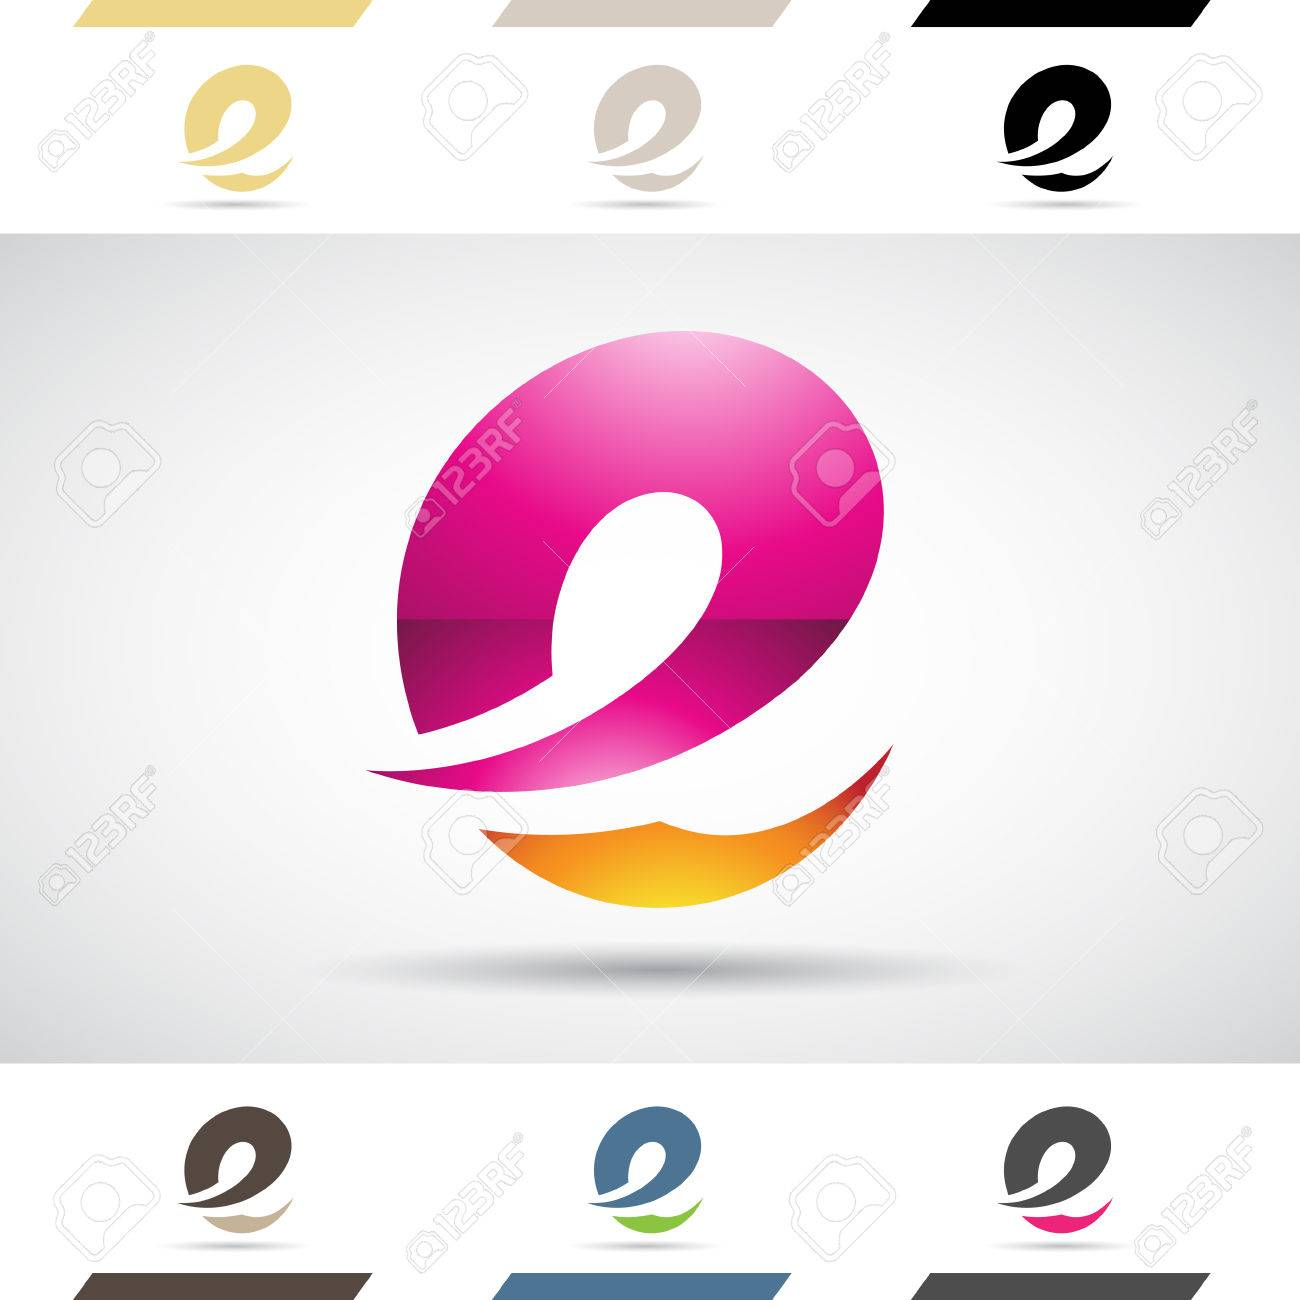 Design Concept Of Colorful Stock Logos Icons And Shapes Of Letter ...